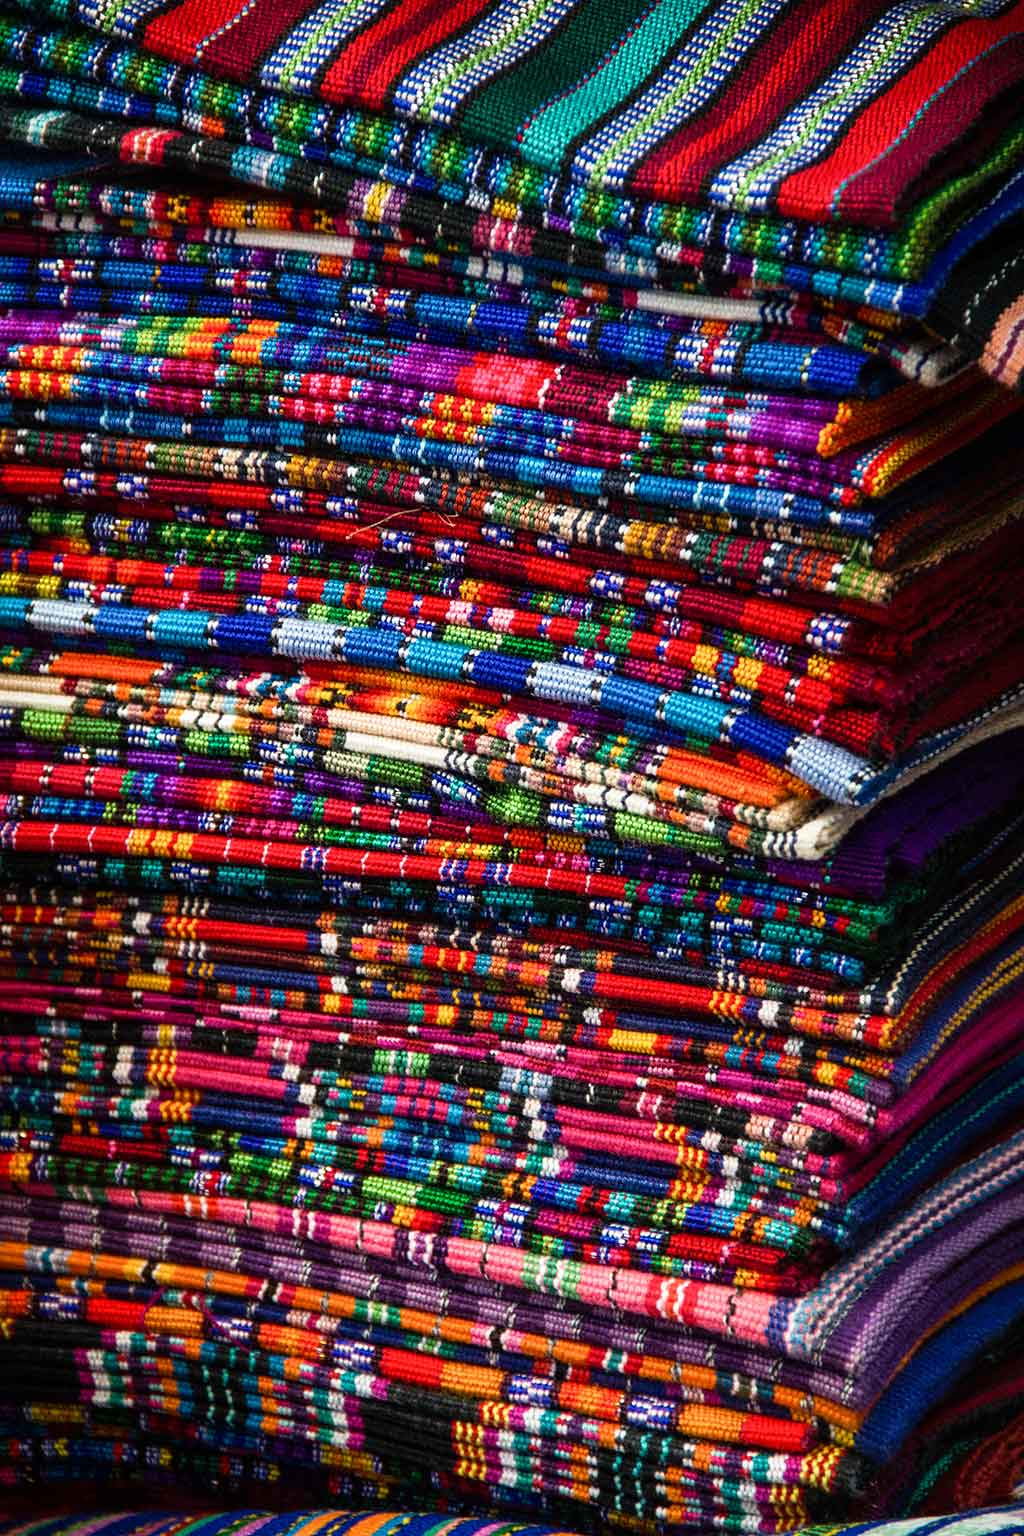 drive-swim-fly-guatemala-central-america-el-faro-antigua-missions-trip-documentary-colorful-blankets